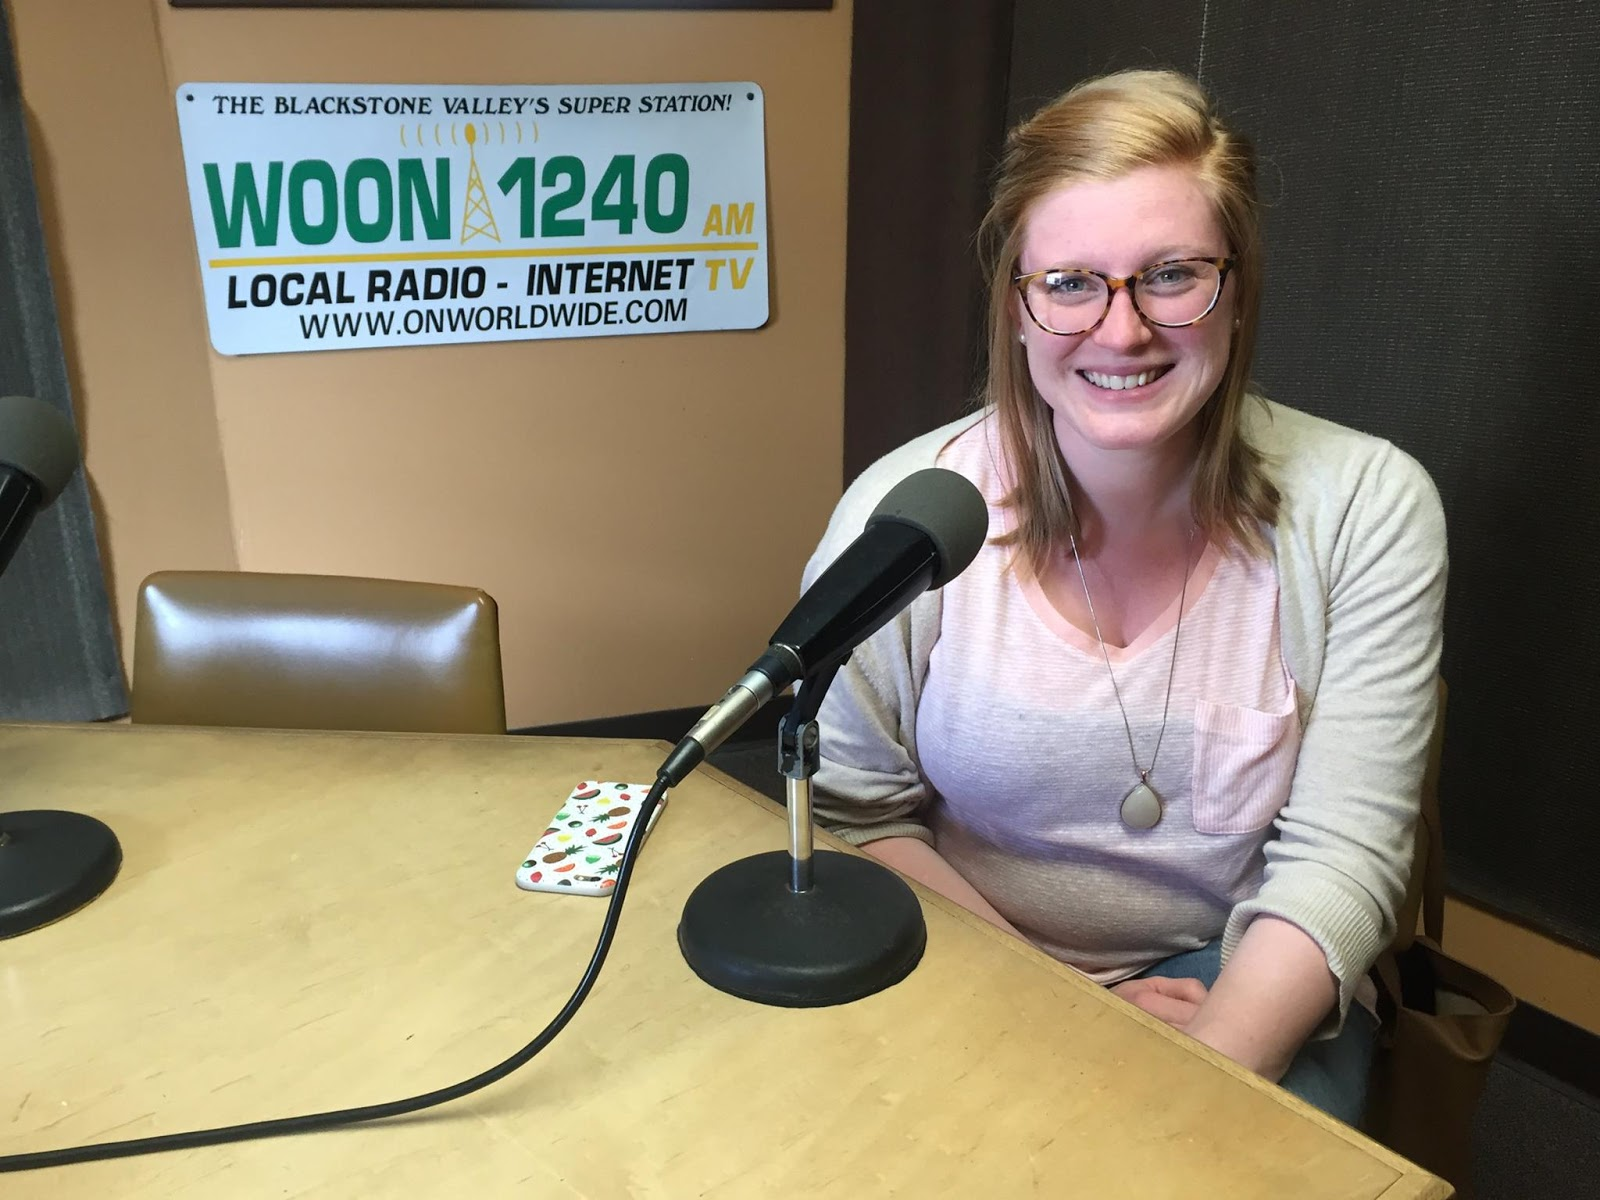 A Few Weeks Back I Had The Pleasure Of Being Interview By Meghan Grady Of  Ywca's She Shines Radio She Shines Radio Is A Weekly Program Celebrating  The